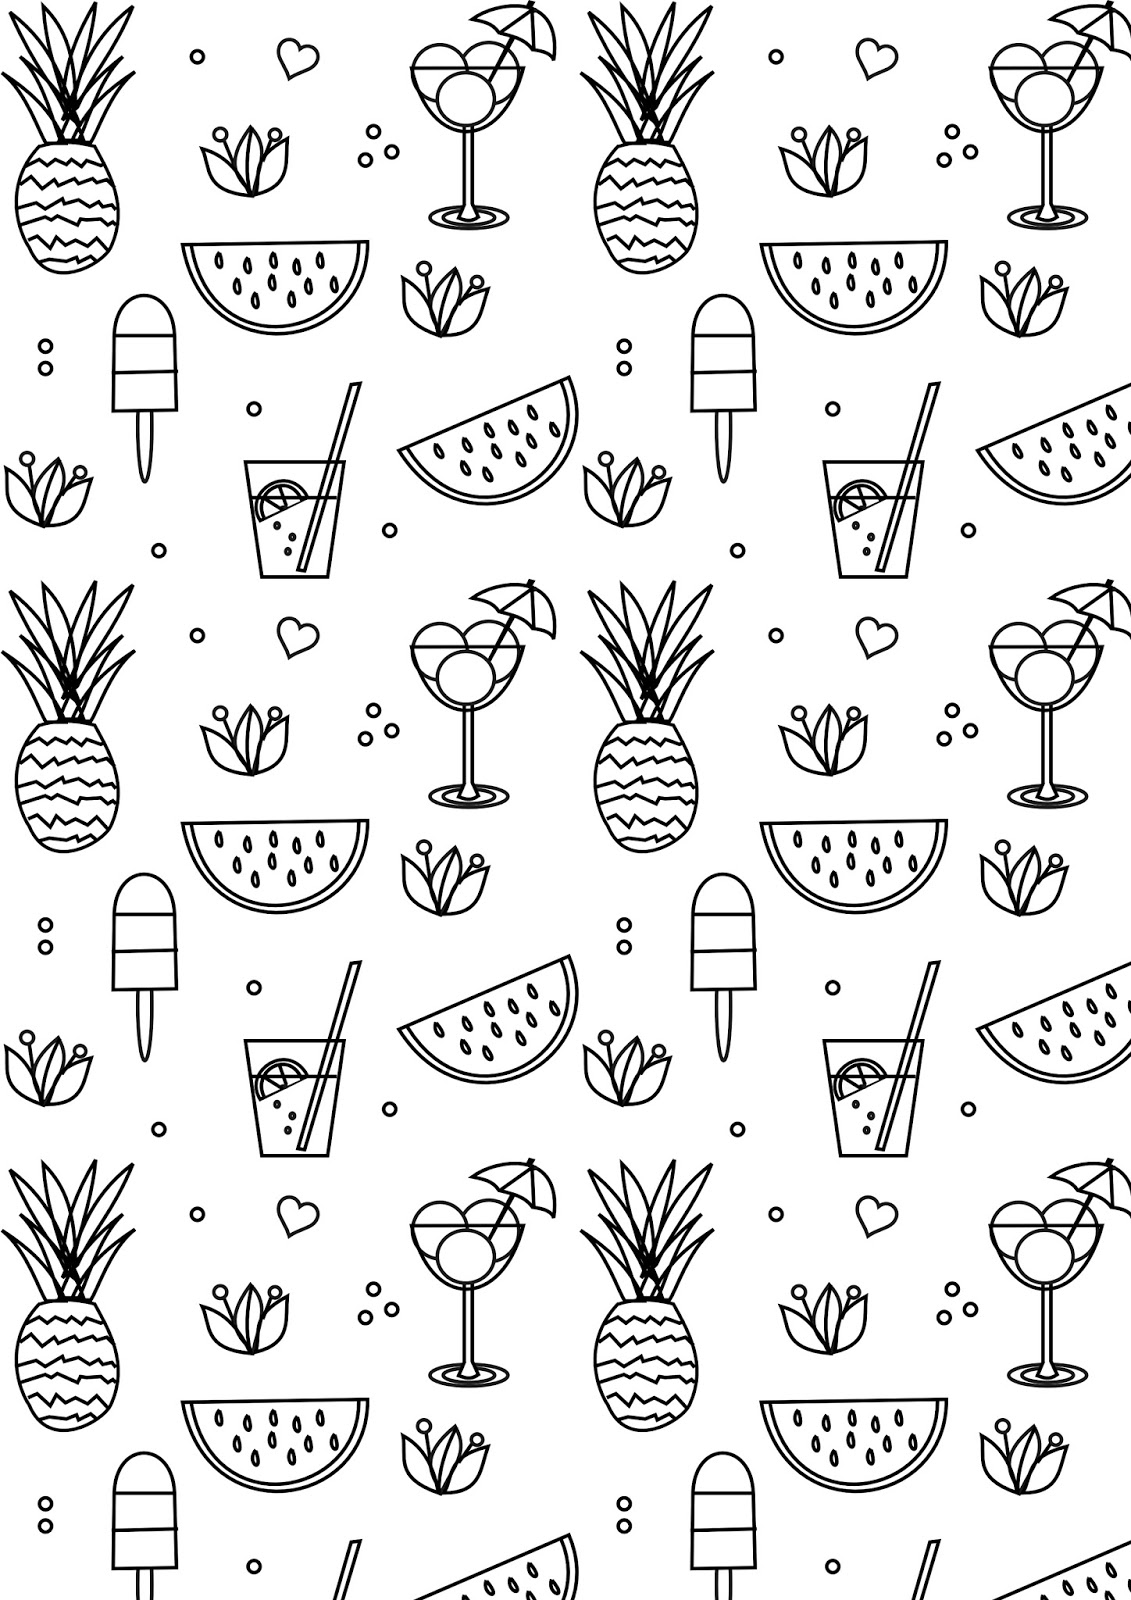 Free printable summer coloring page ausdruckbare for Free printable coloring pages summer